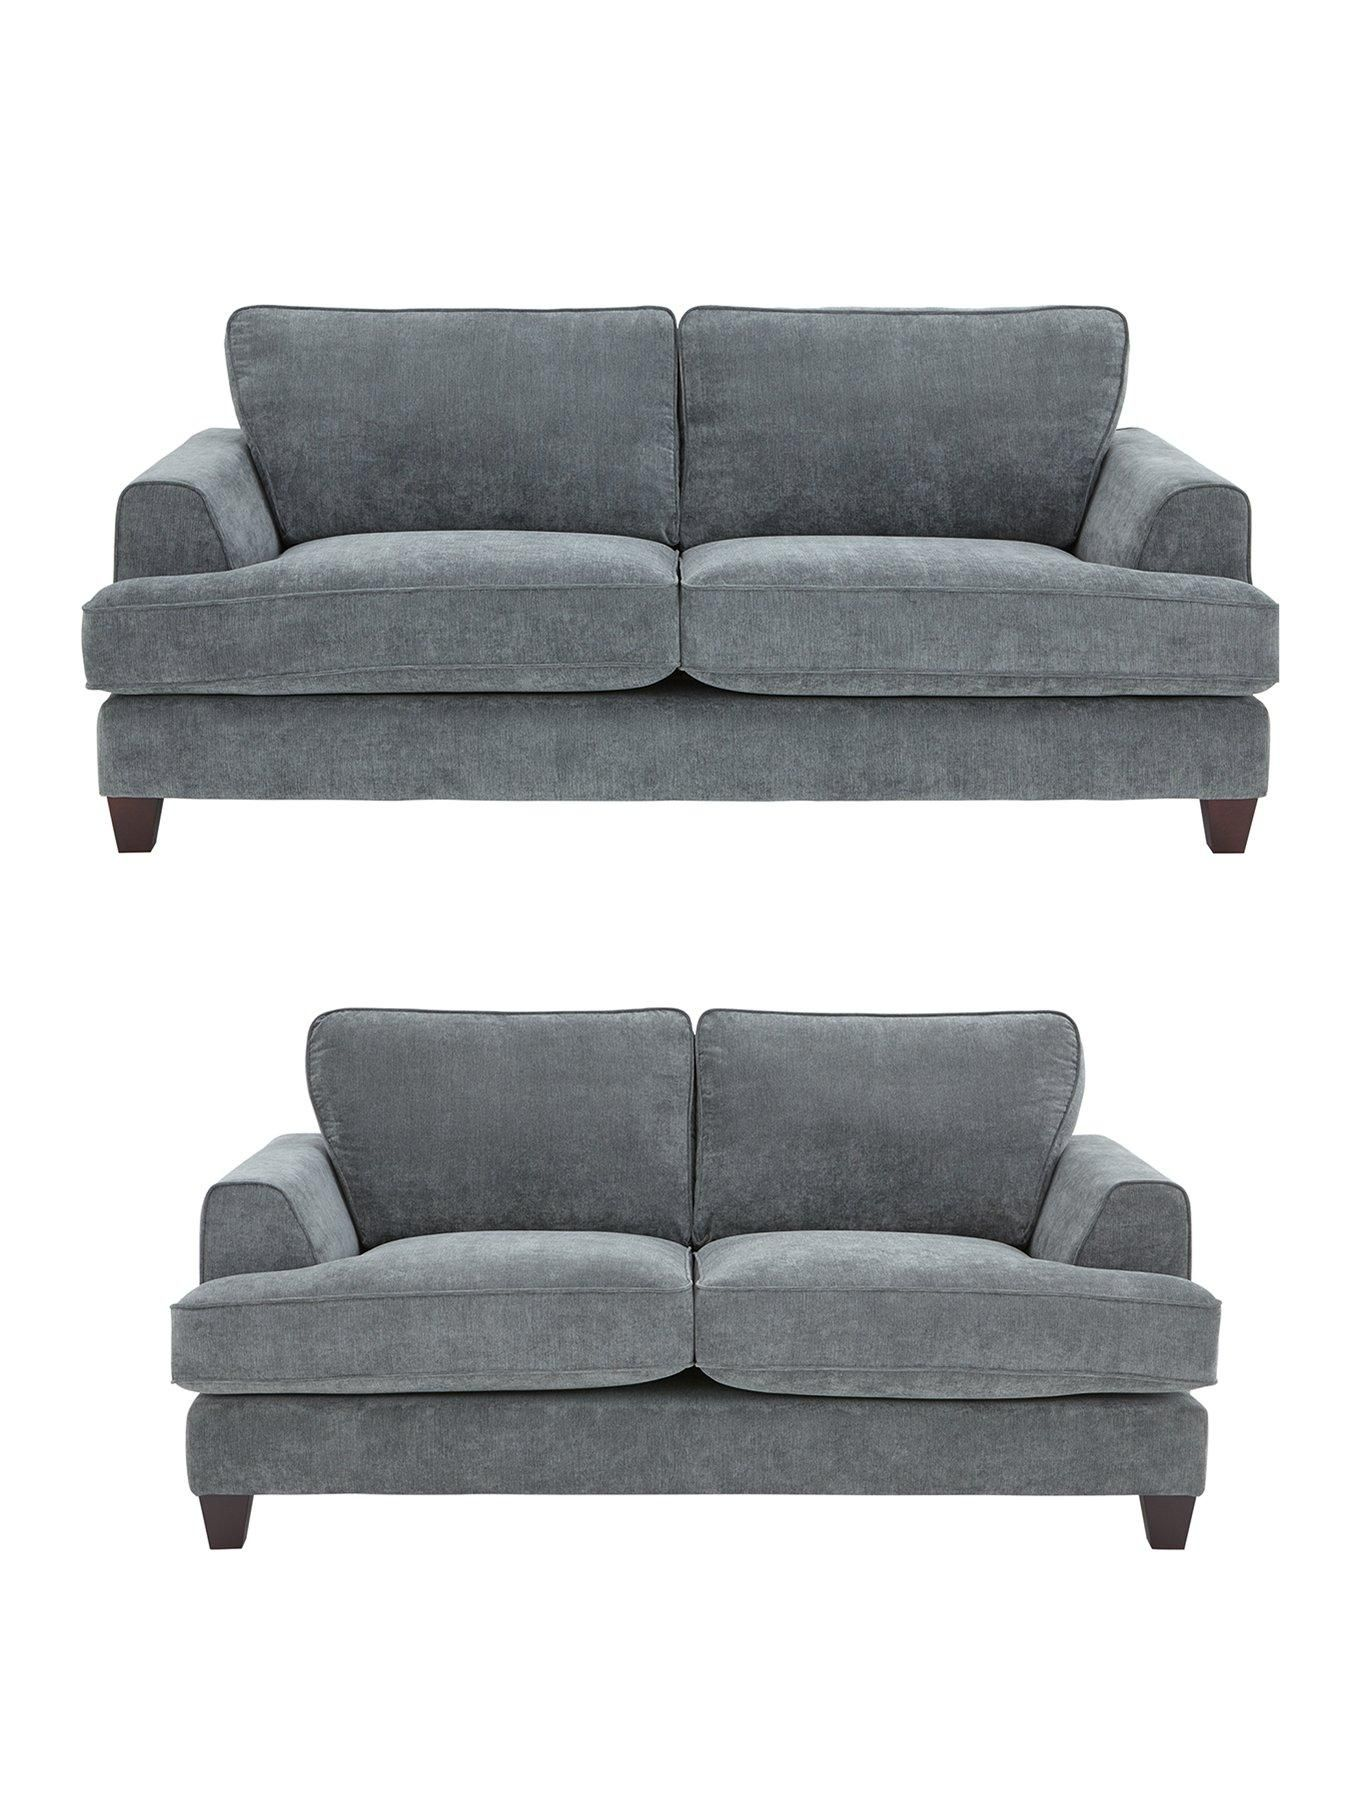 Ideal Home New Camden 3 Seater 2 Seater Fabric Sofa Set Buy And Save Very Co Uk Fabric Sofa Sofa Set Ideal Home